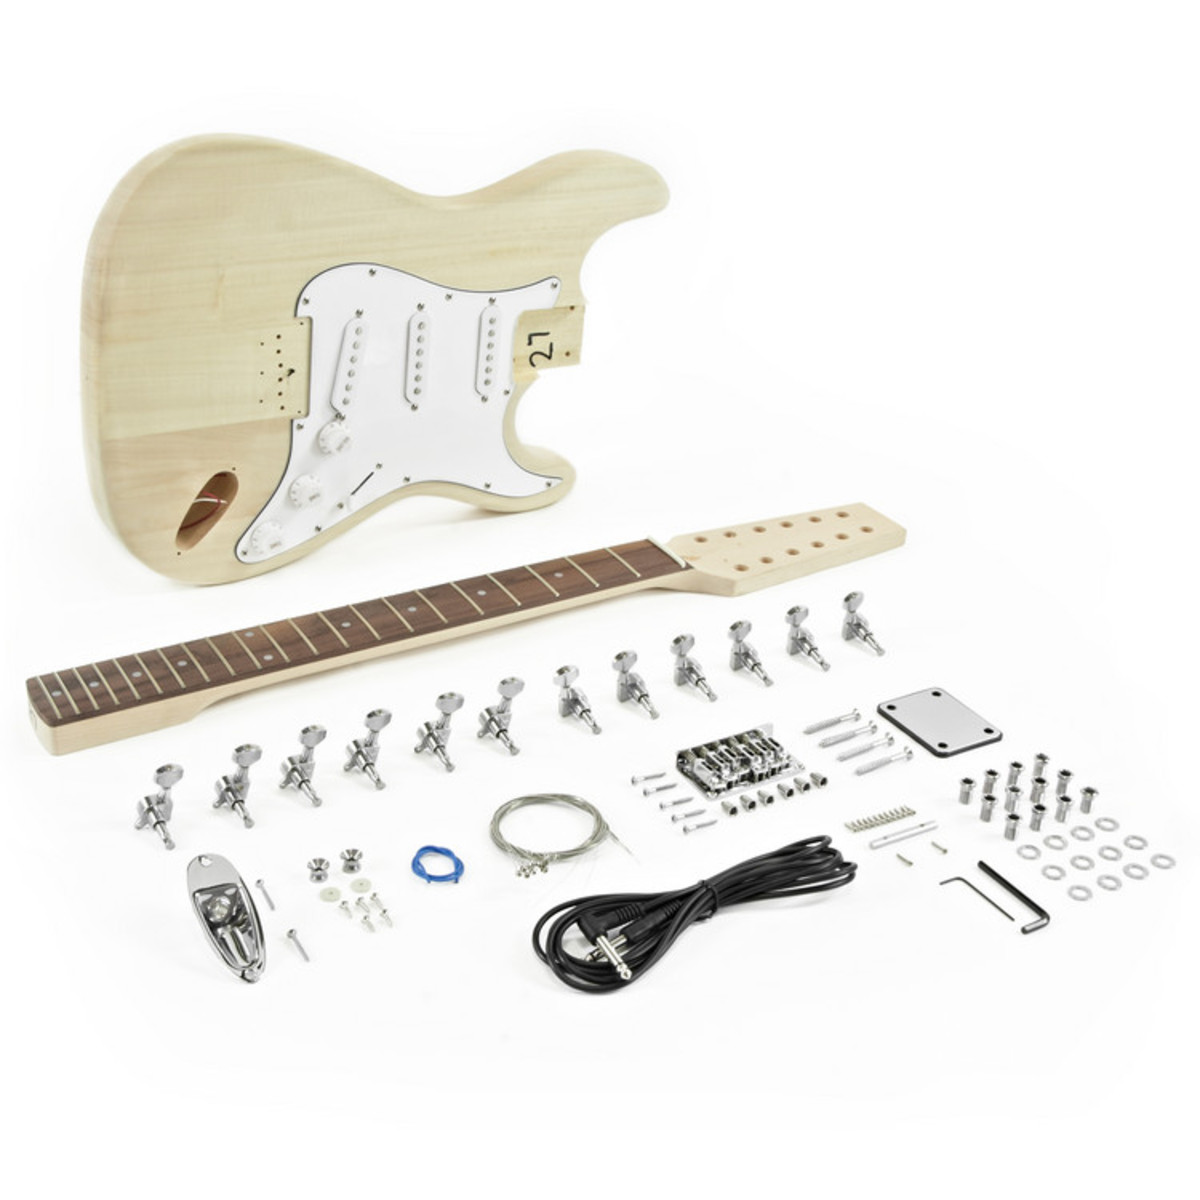 12 string la electric guitar diy kit at gear4music. Black Bedroom Furniture Sets. Home Design Ideas